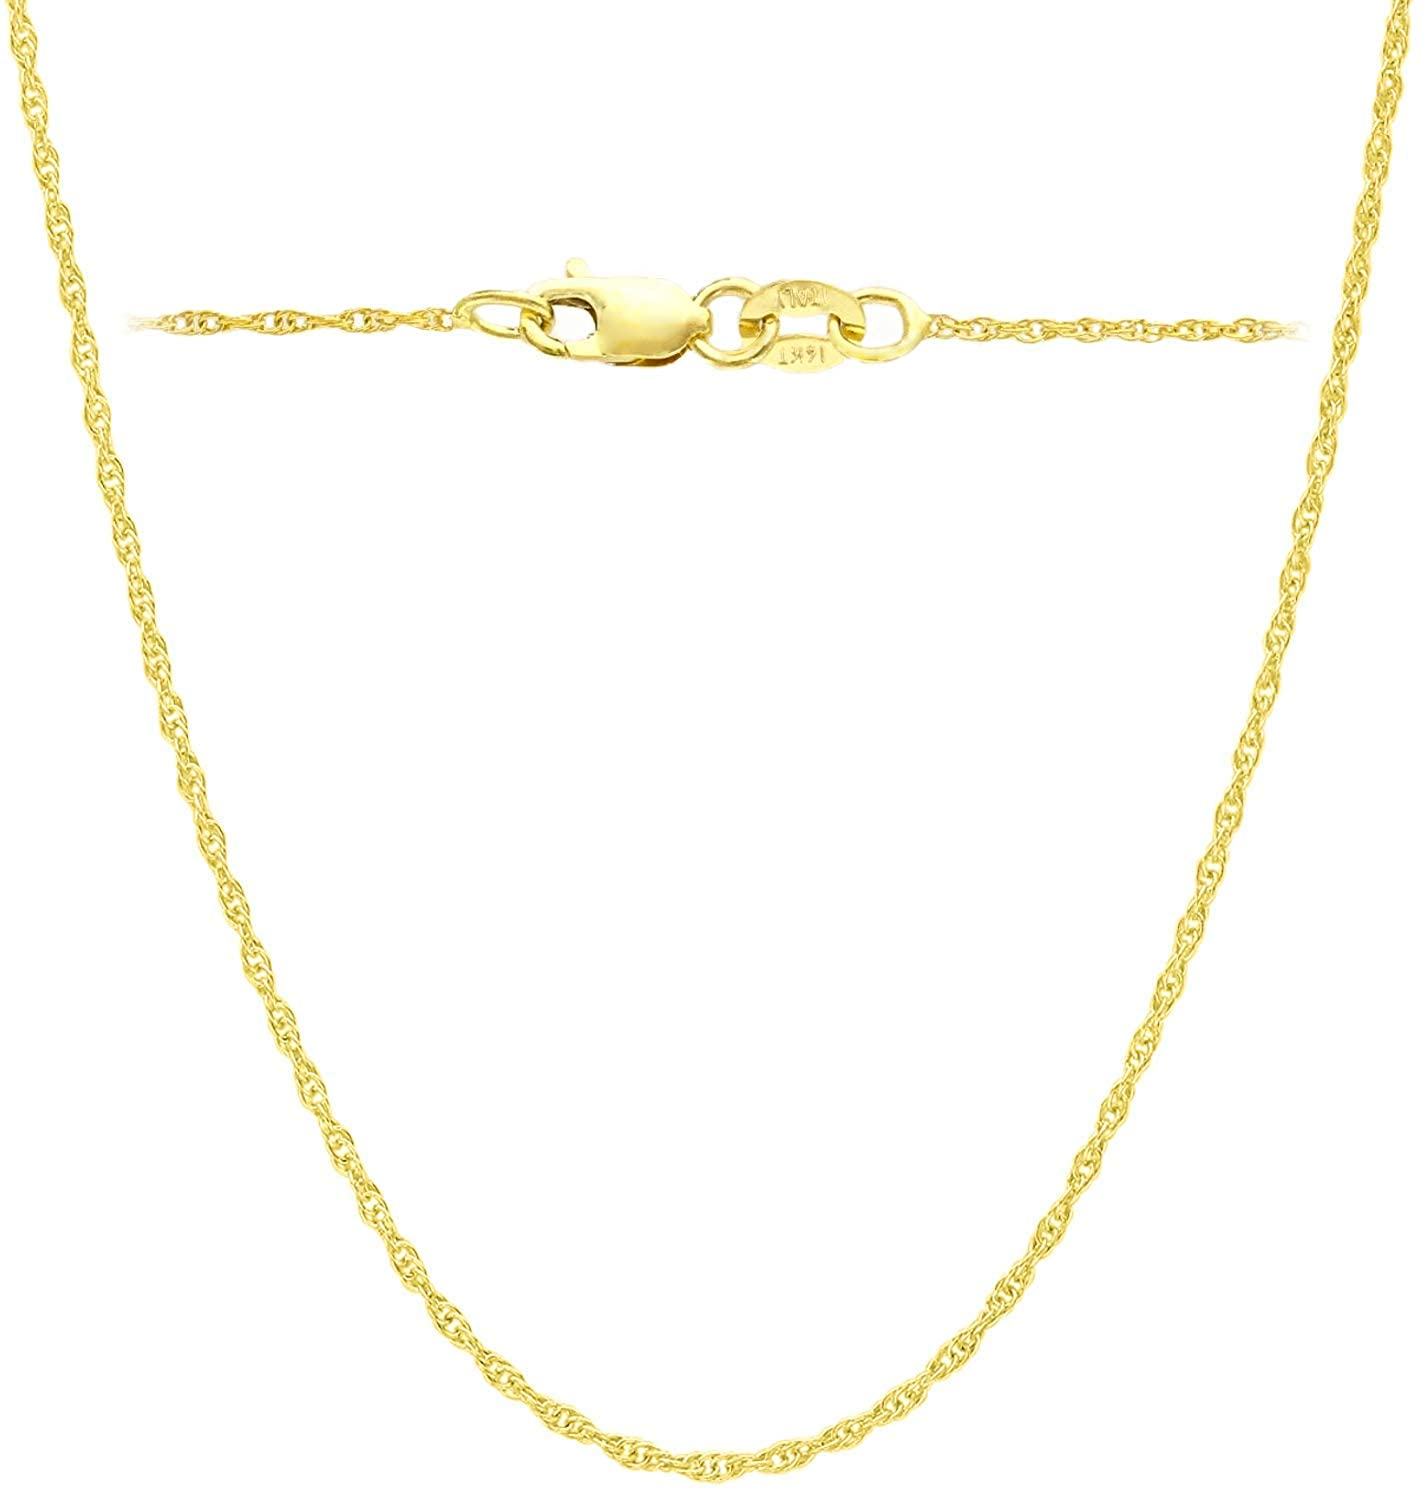 14K Yellow or white Solid Gold Italian Diamond Cut 0.7mm Rope Chain Necklace Thin Lightweight Strong With Free 1